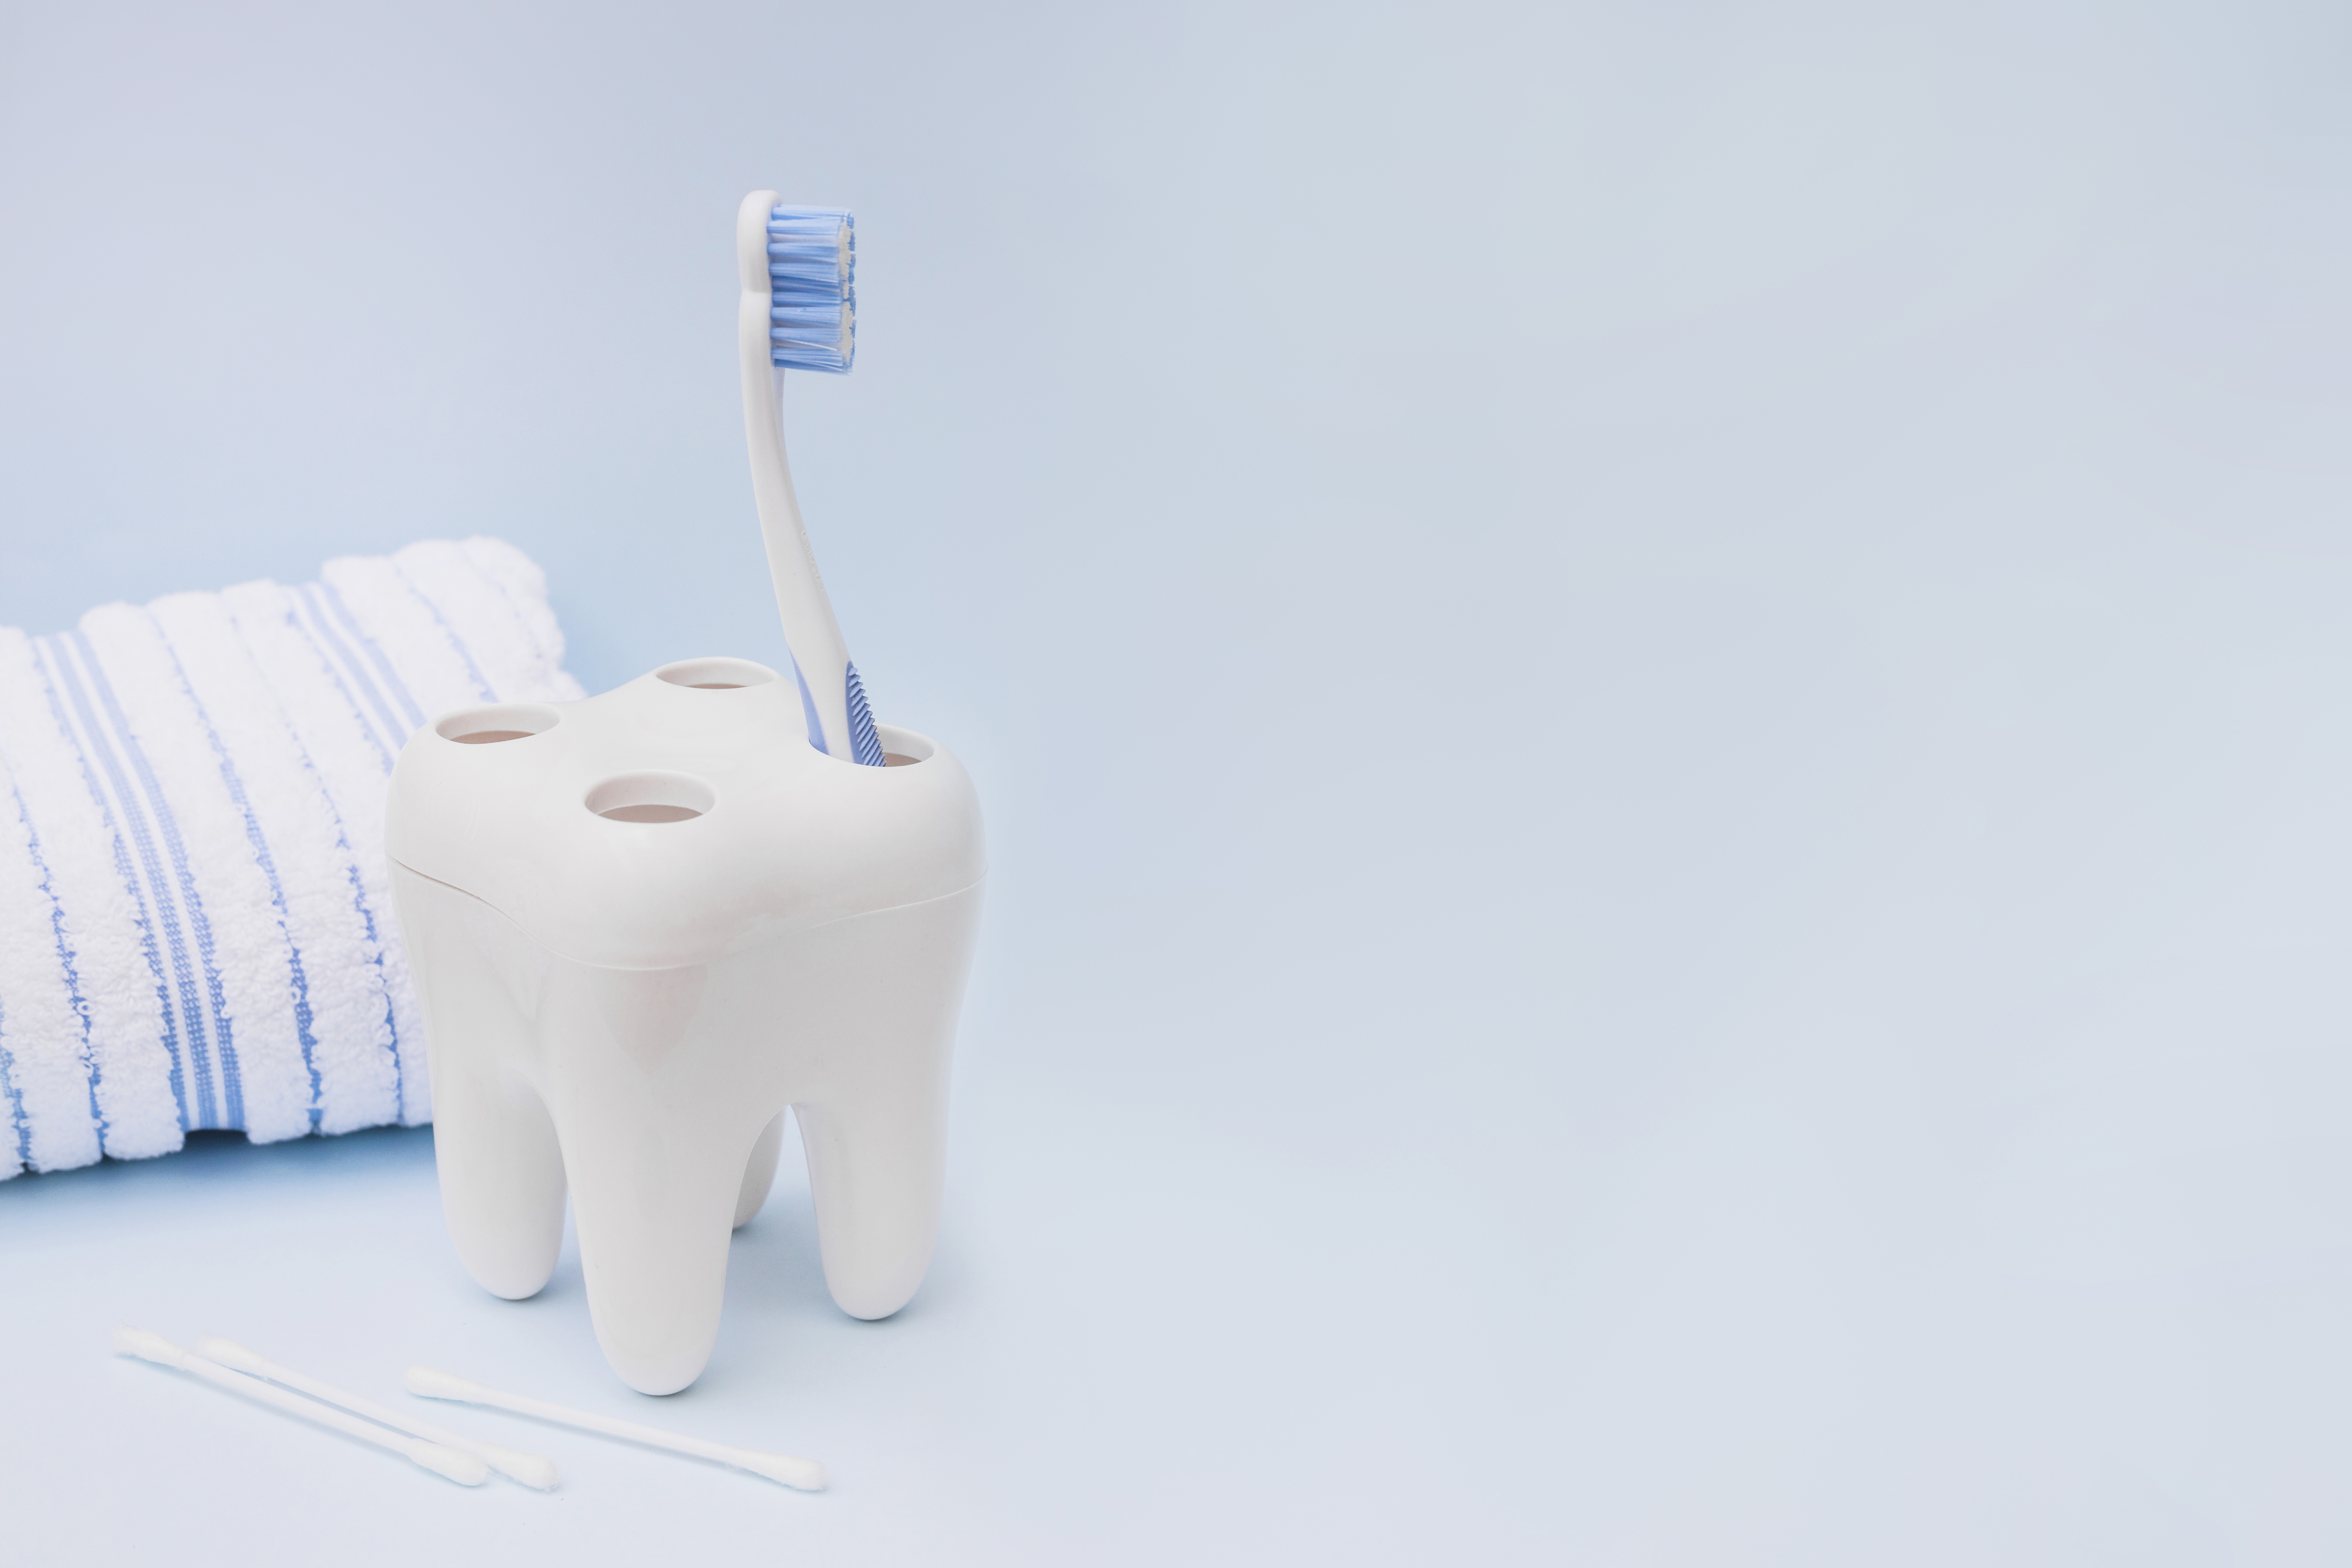 In Frederick, MD, Triston Jimenez and Darien Fitzgerald Learned About Oral Care Tips